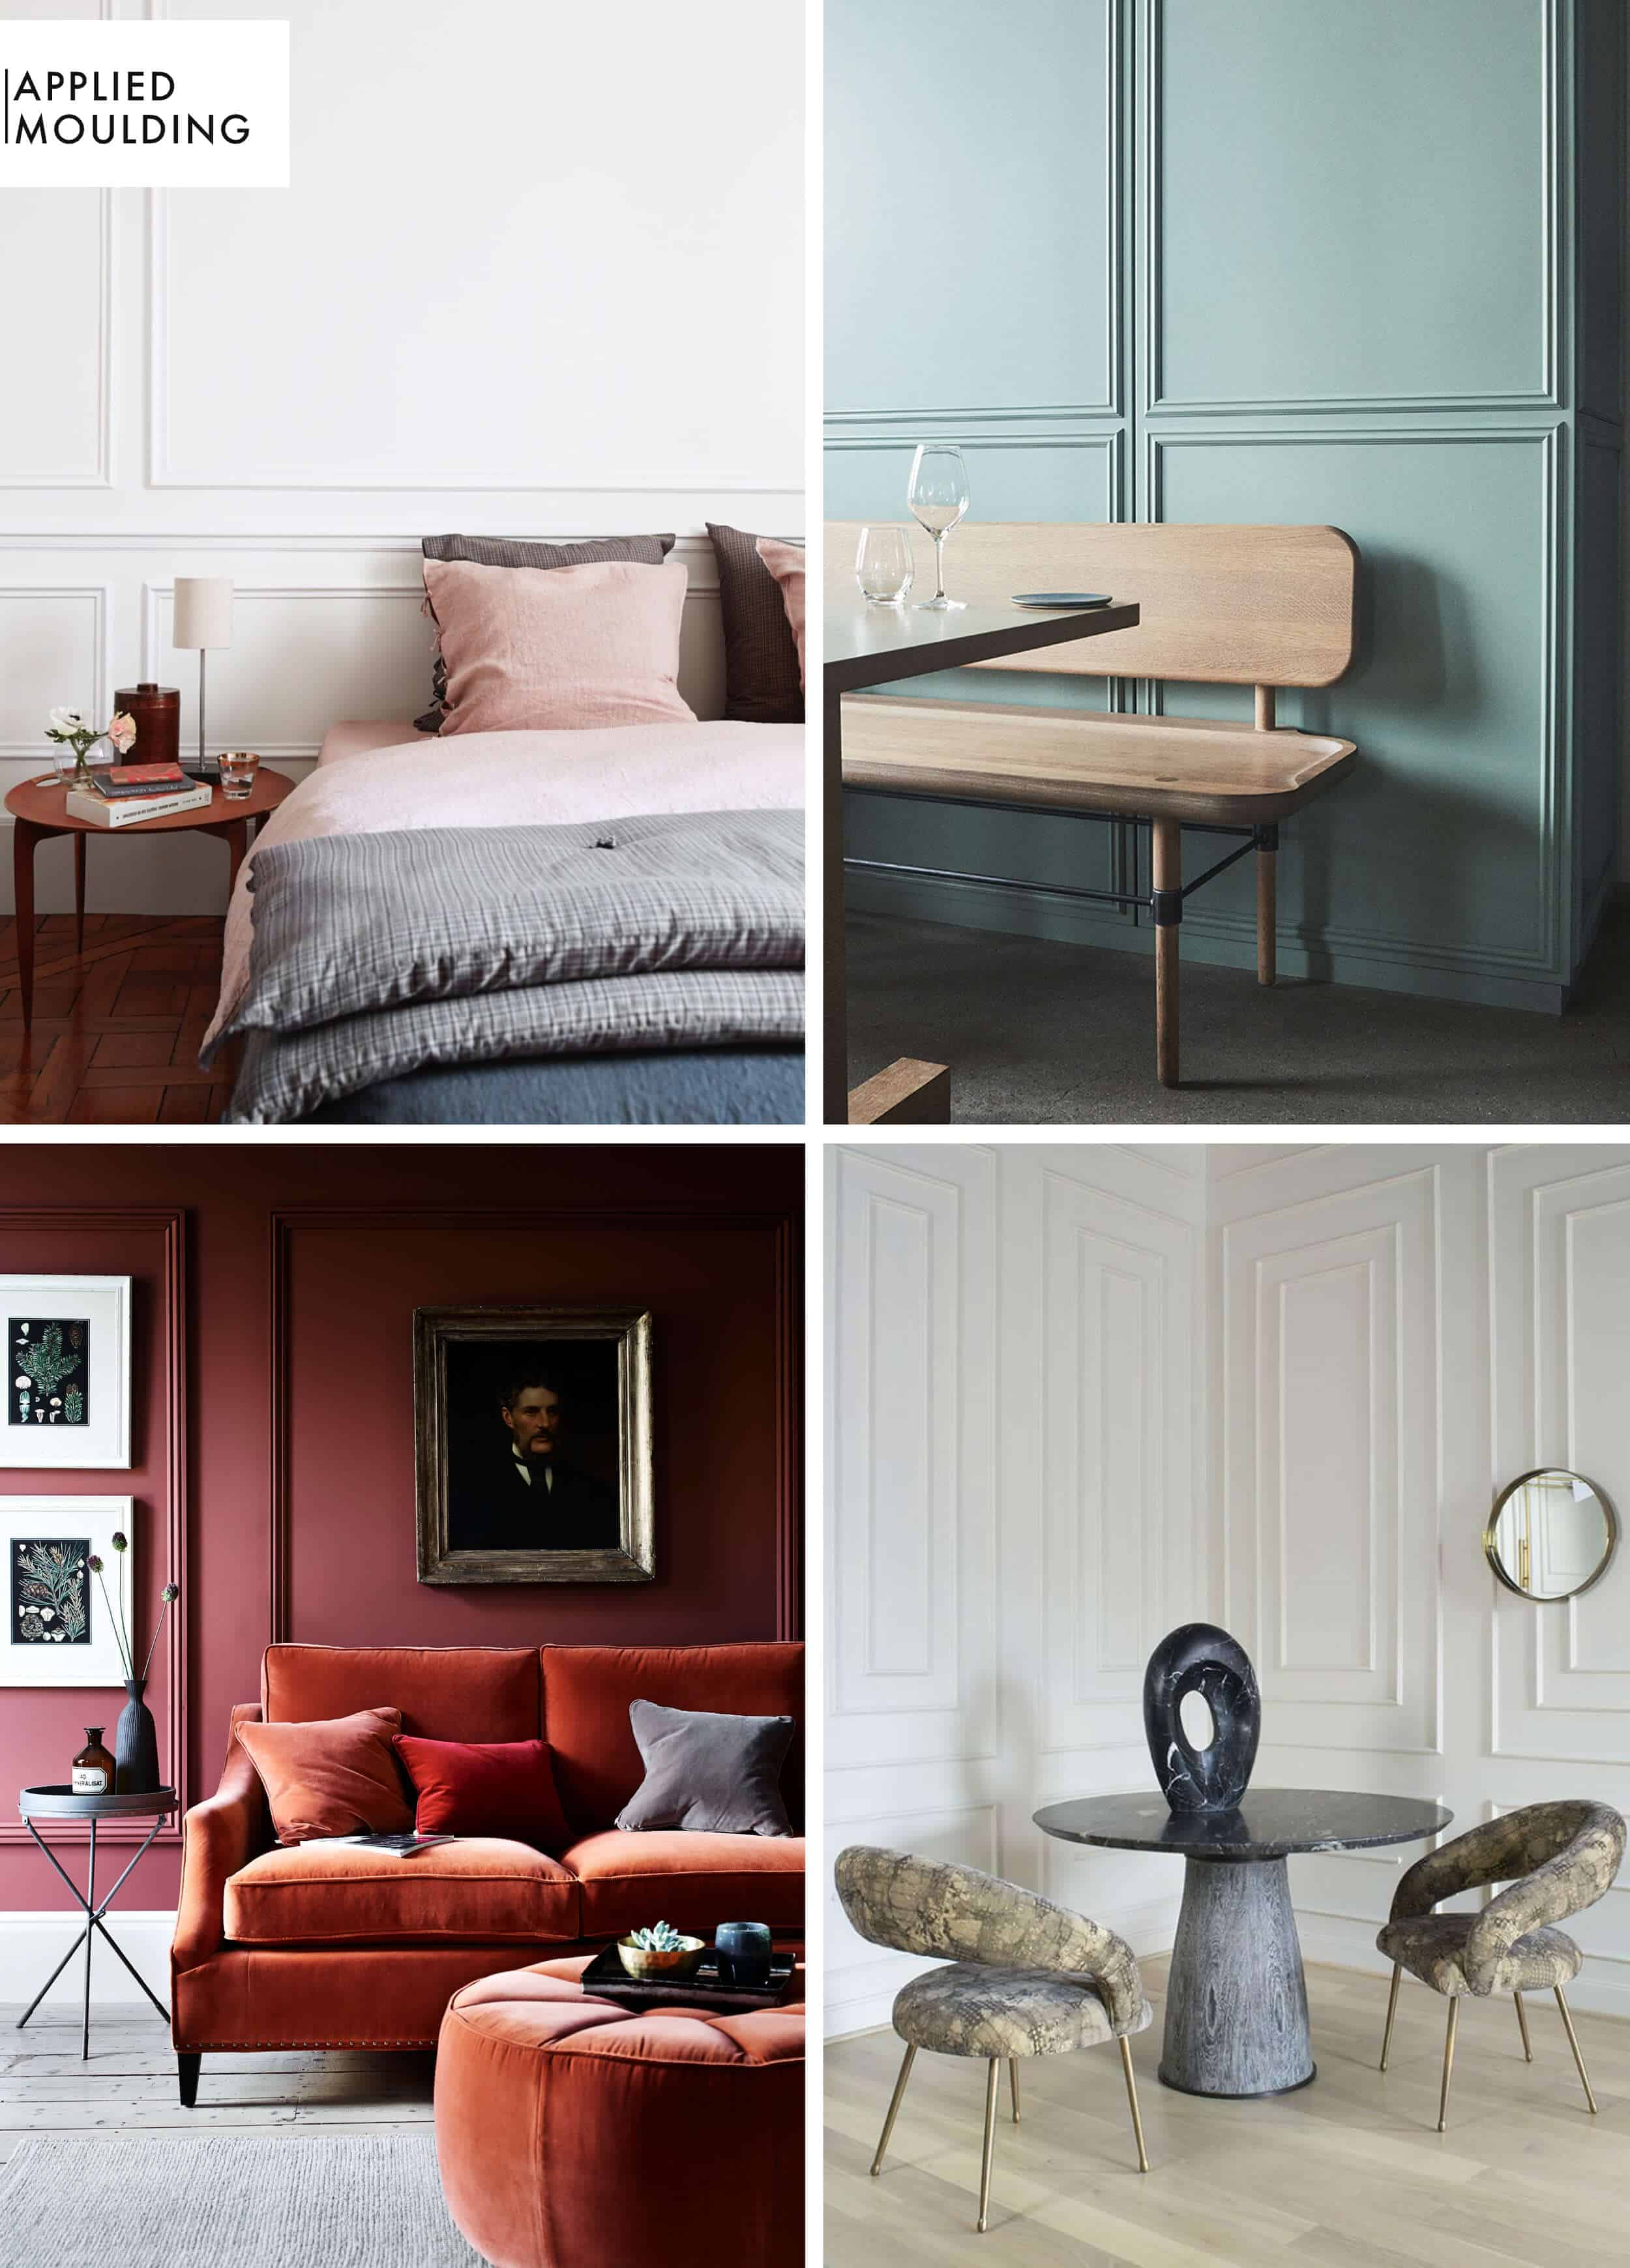 How To Add Character And Charm To Boring Architecture And Houses Applied Moulding Final